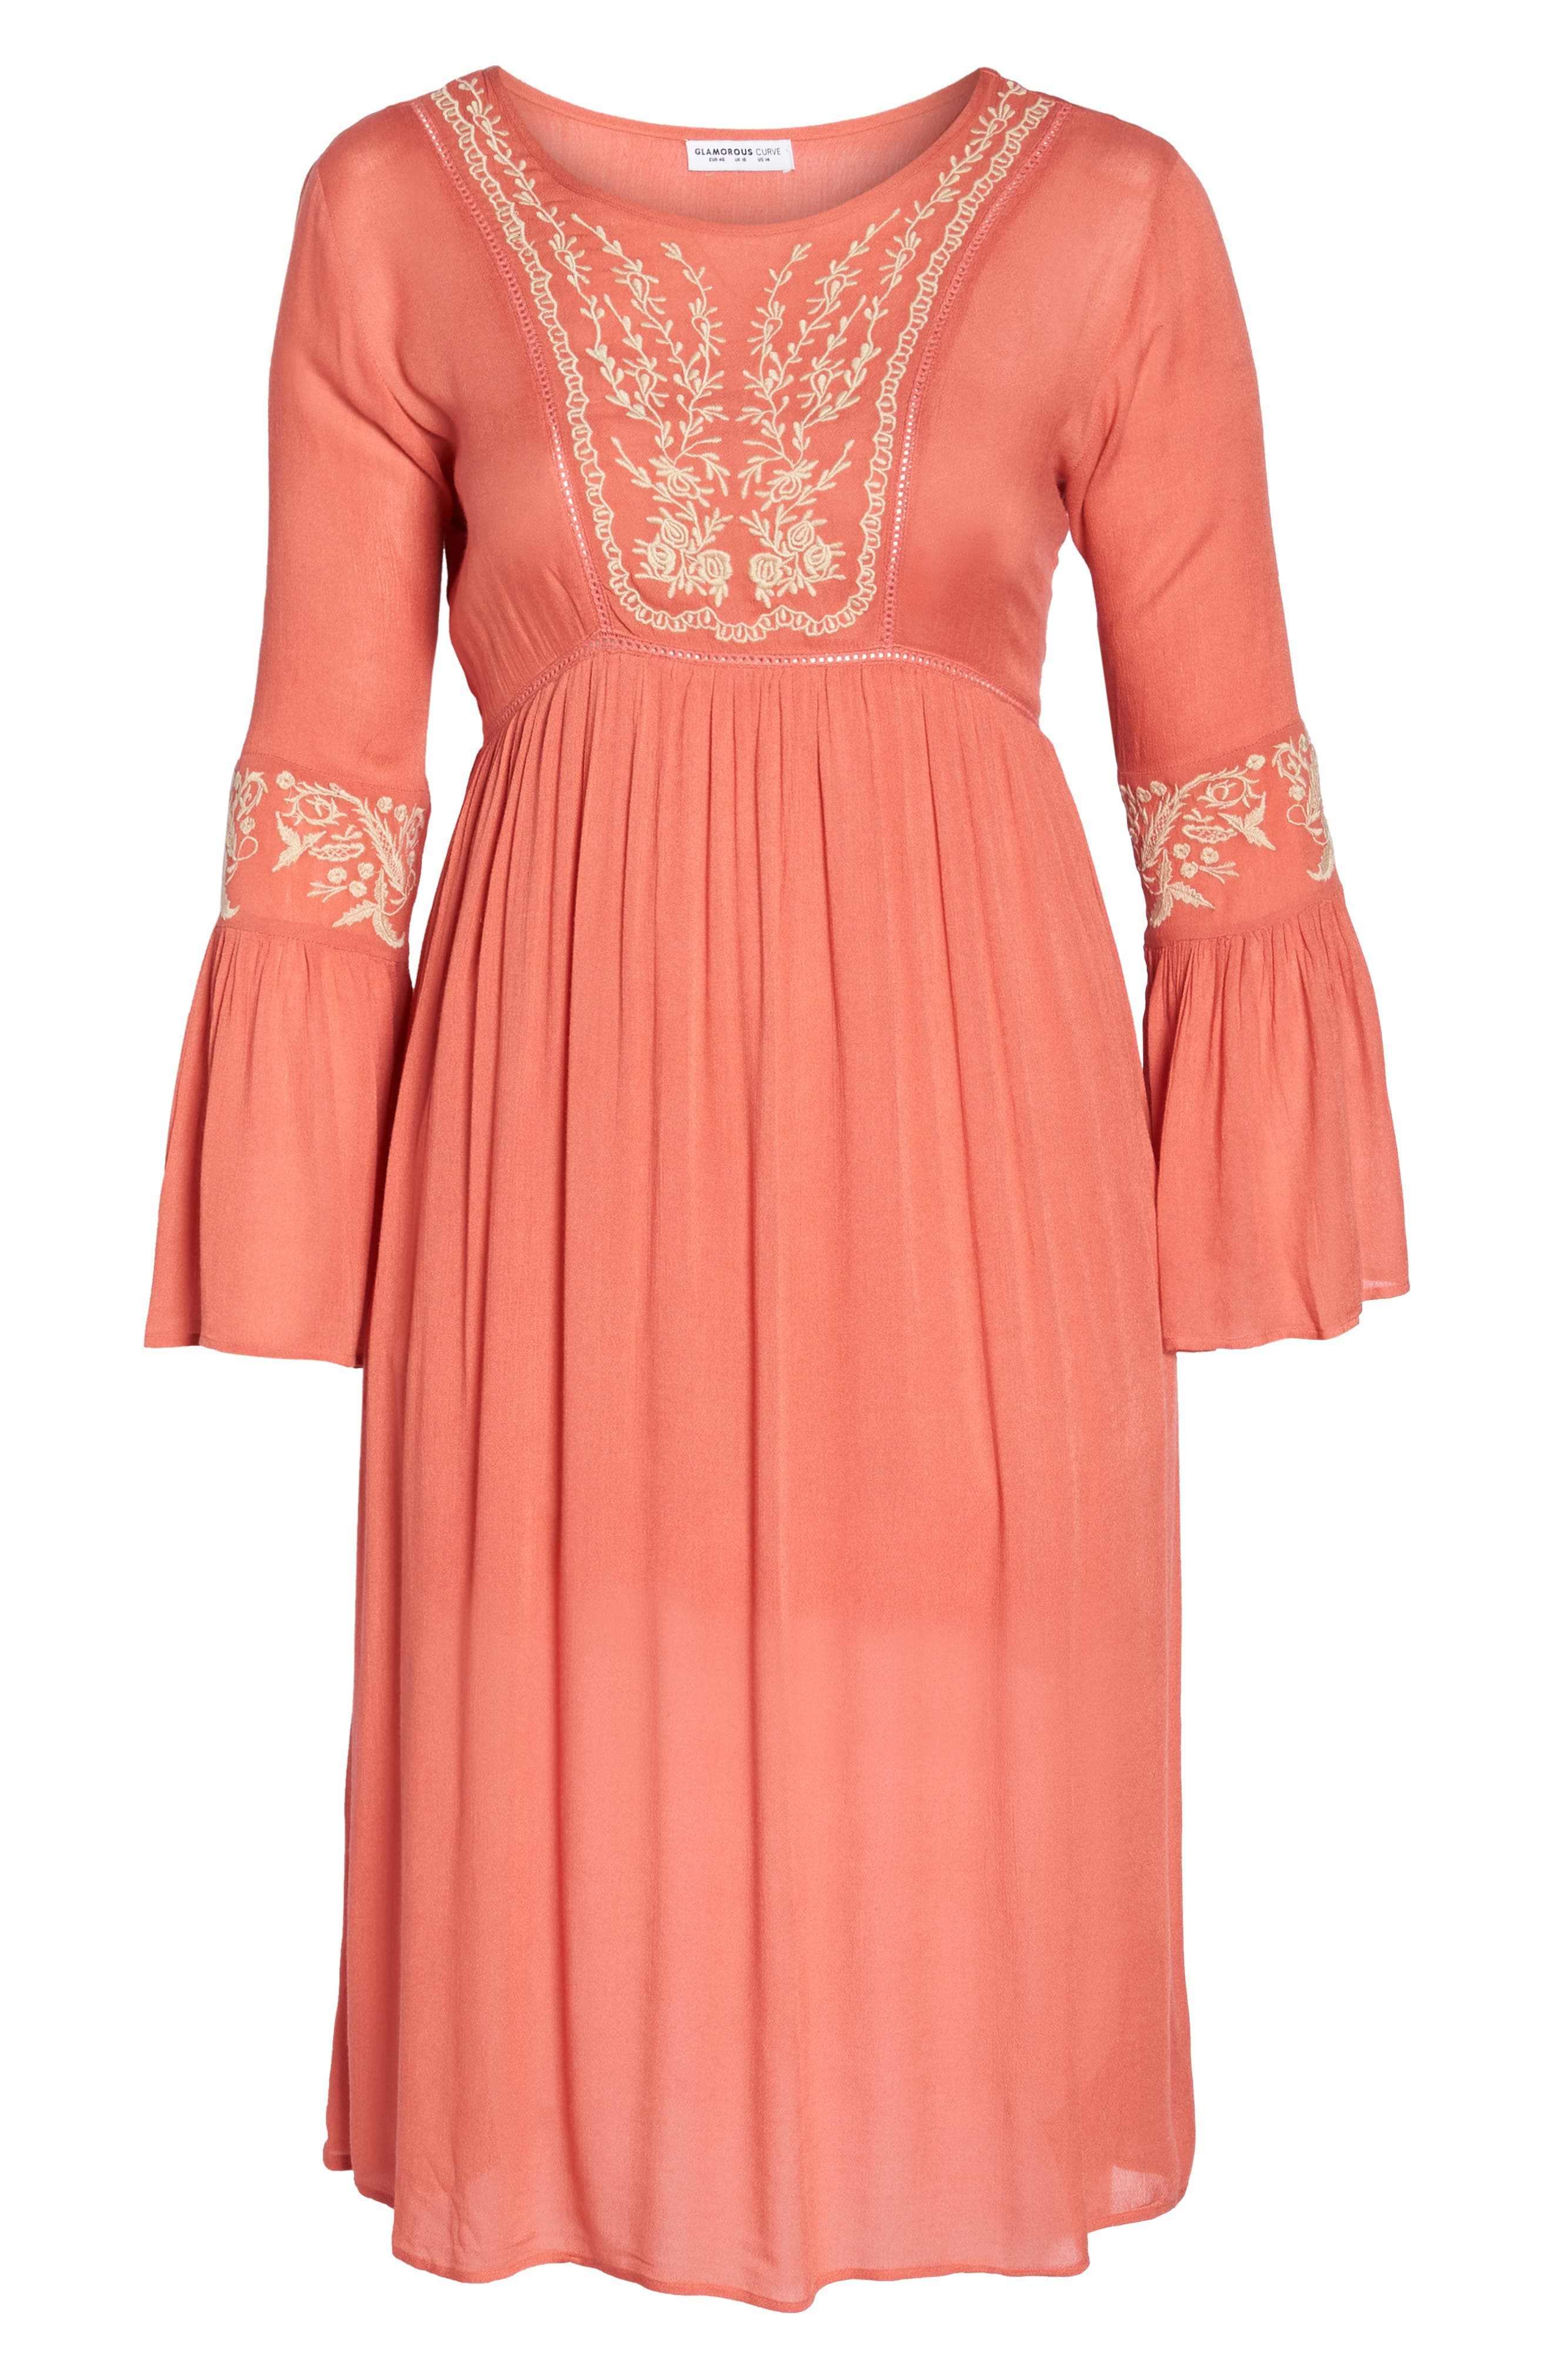 Embroidered Bell Sleeve Midi Dress,                             Alternate thumbnail 7, color,                             950